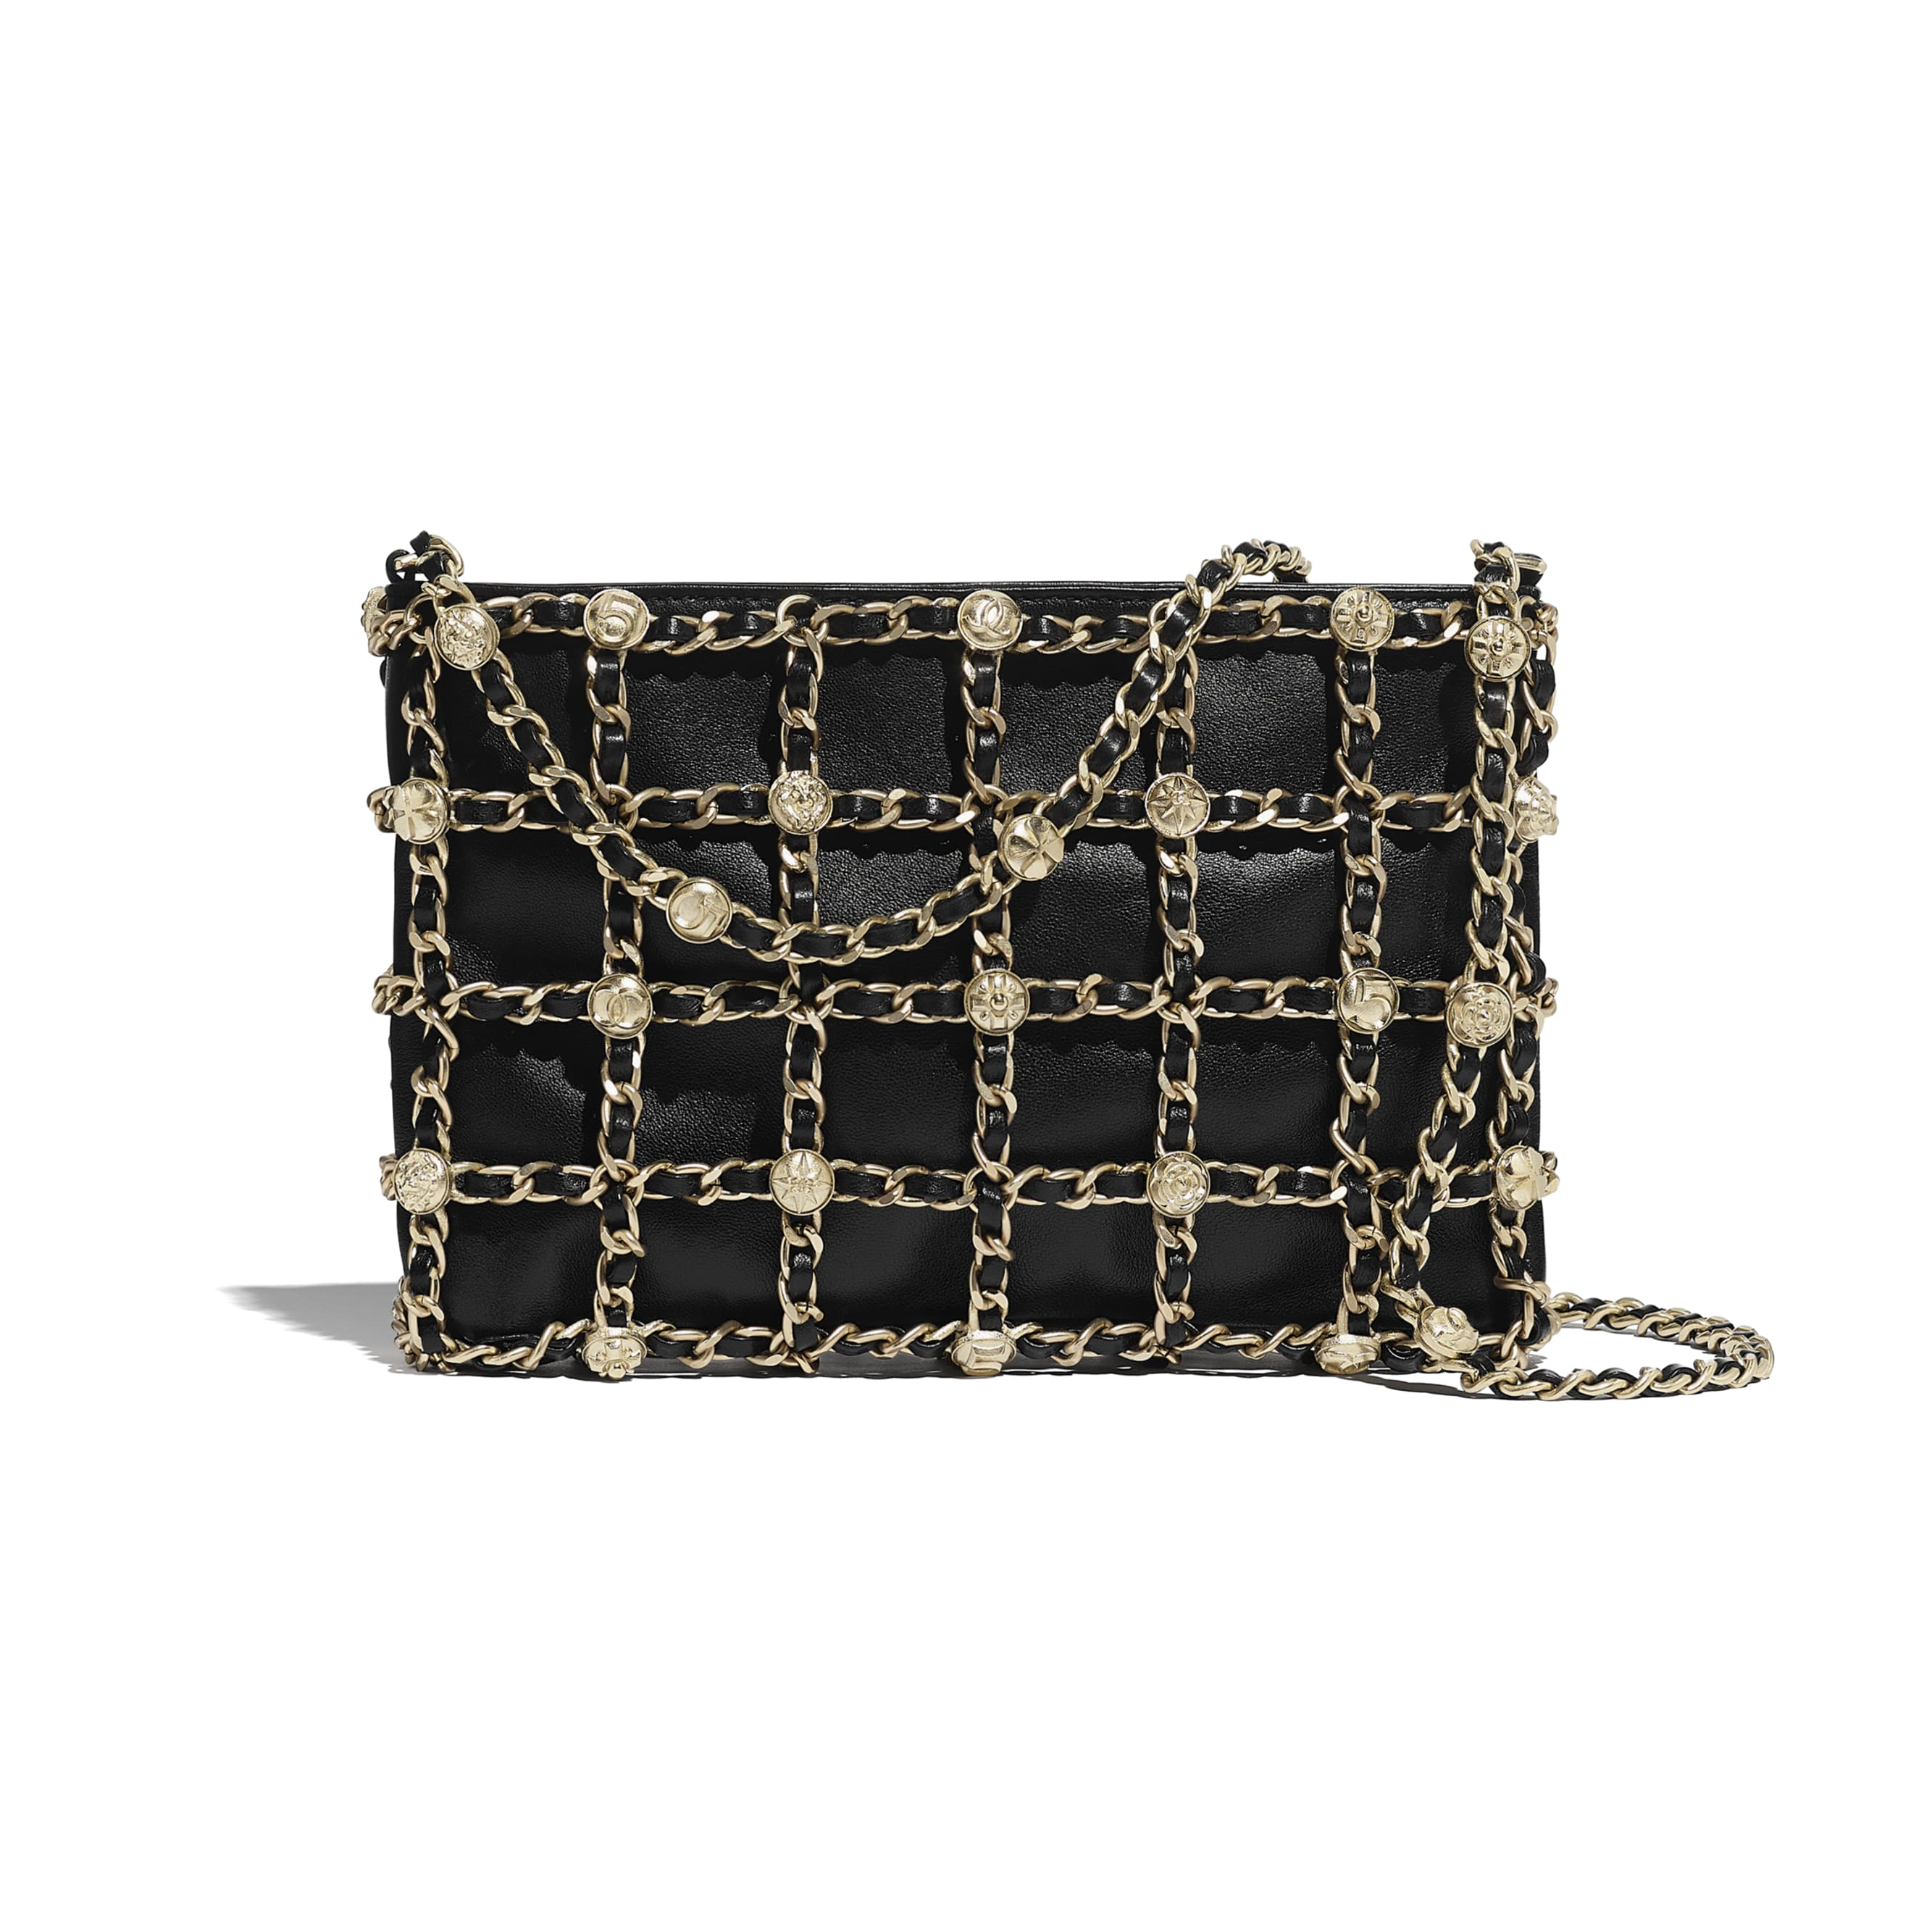 Clutch - Black - Lambskin, Studs & Gold-Tone Metal - CHANEL - Default view - see standard sized version